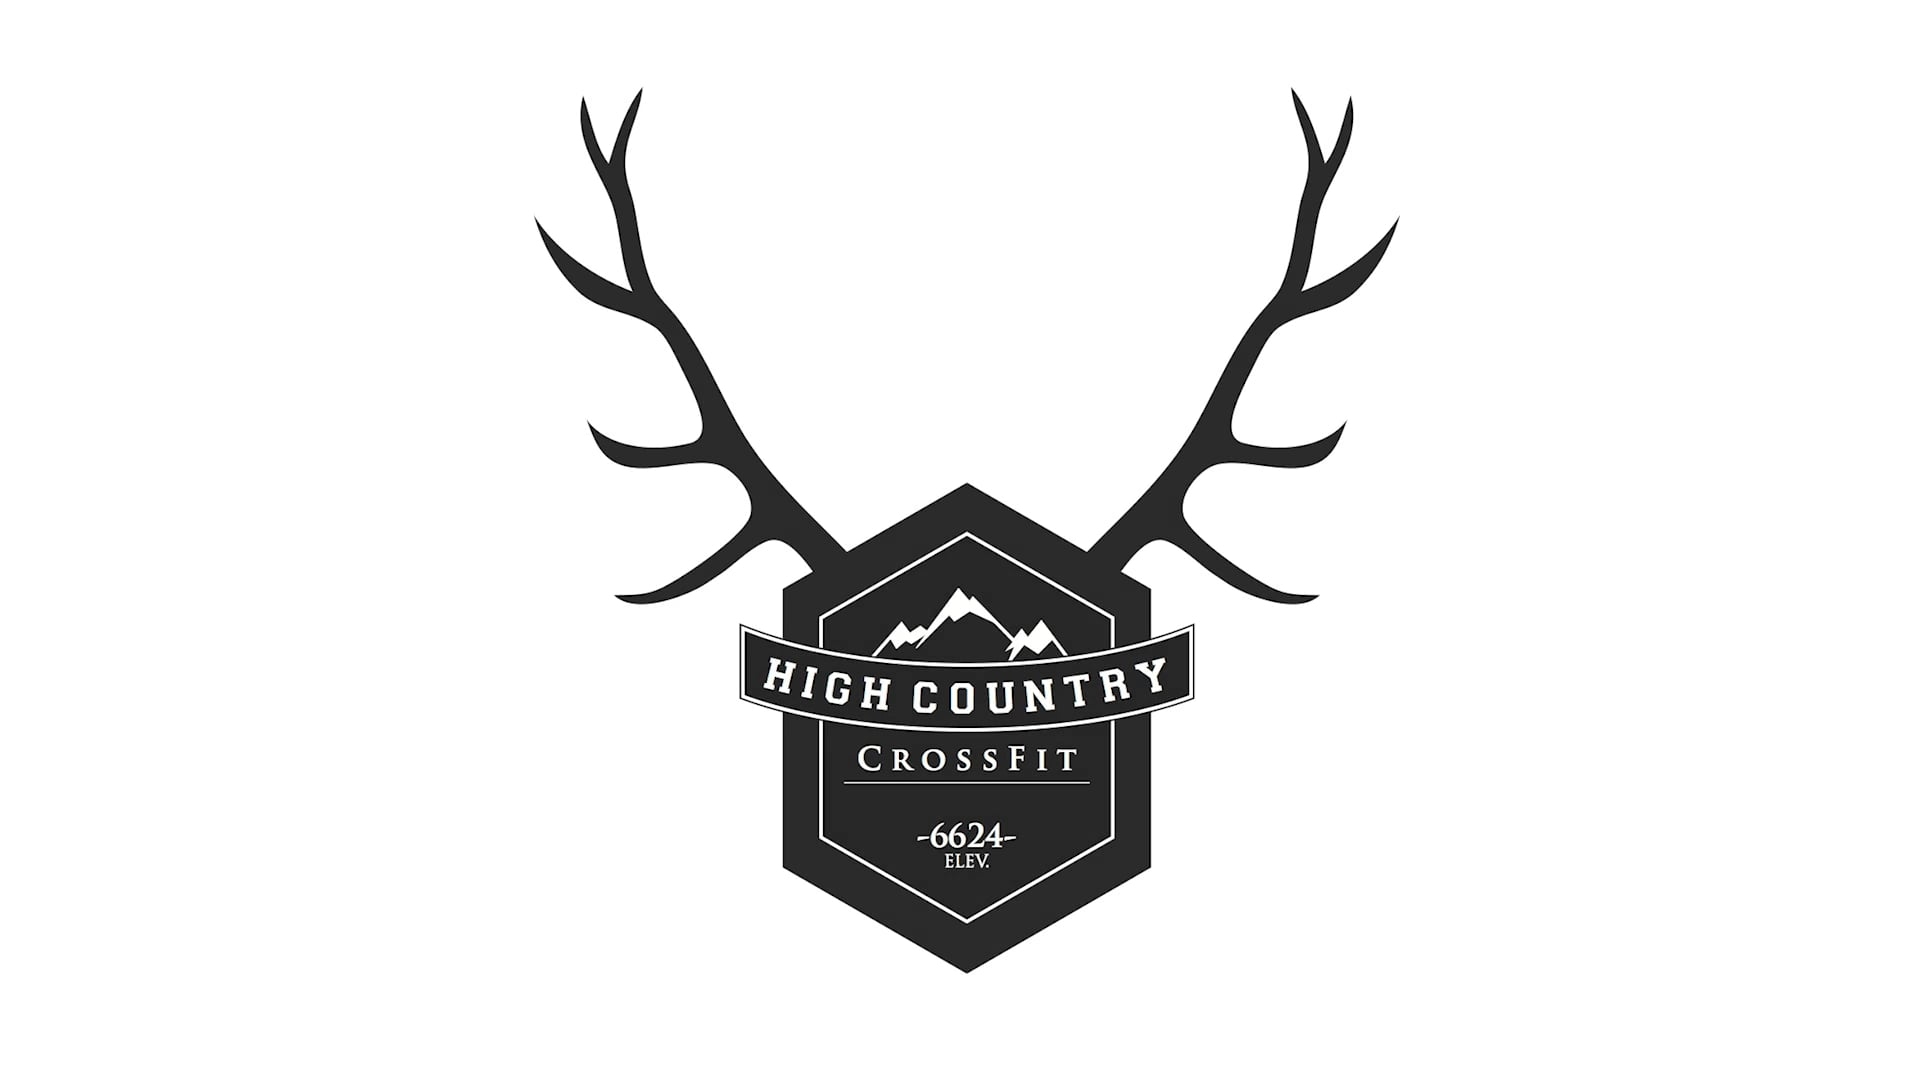 High Country Crossfit